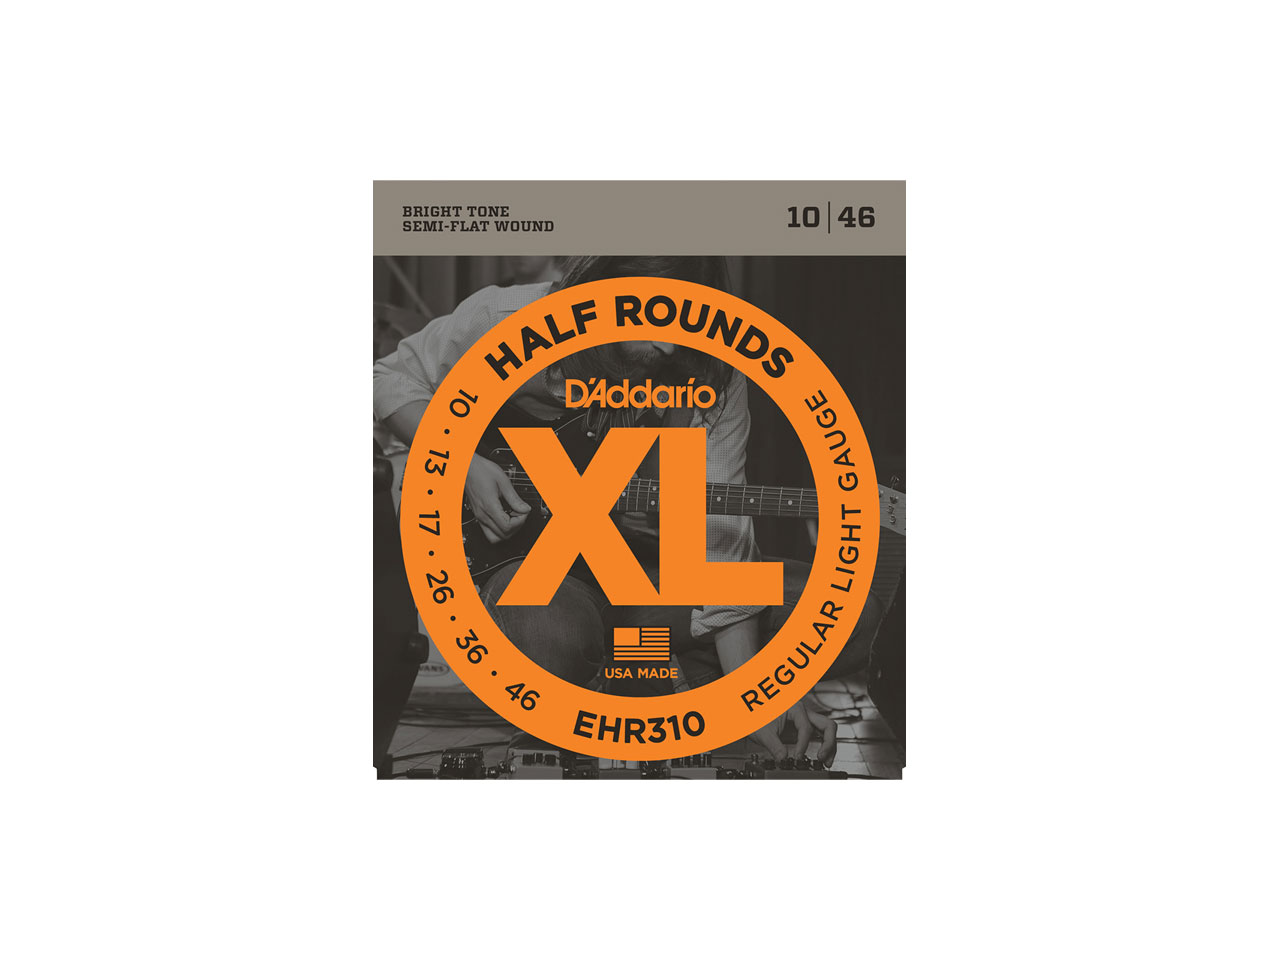 D'Addario(ダダリオ) XL Half Rounds Regular Light / EHR310 (エレキギター弦)